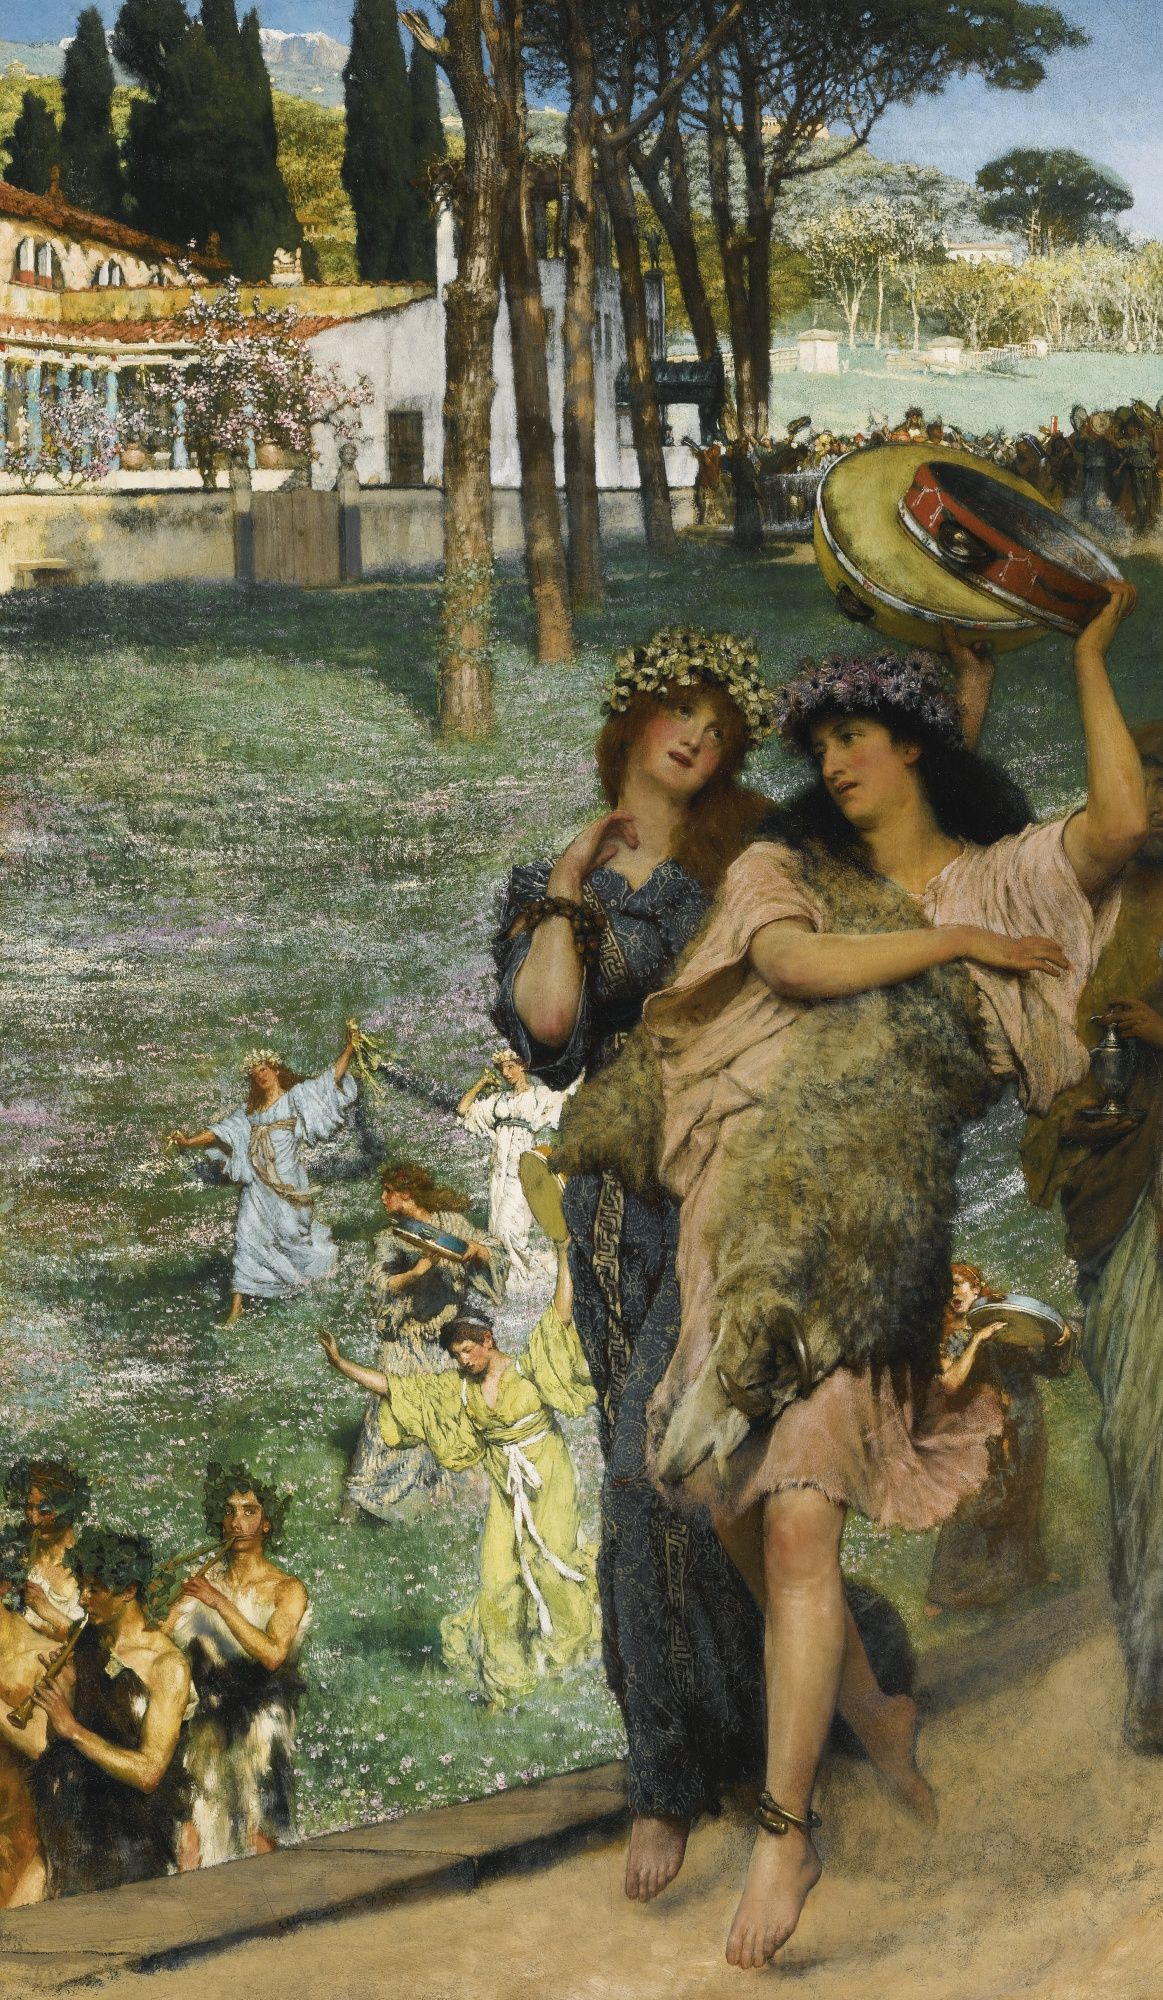 Sir Lawrence Alma-Tadema, A Spring Festival, or On the Road to the Temple of Ceres), oil on canvas, 89 by 53.3 cm,